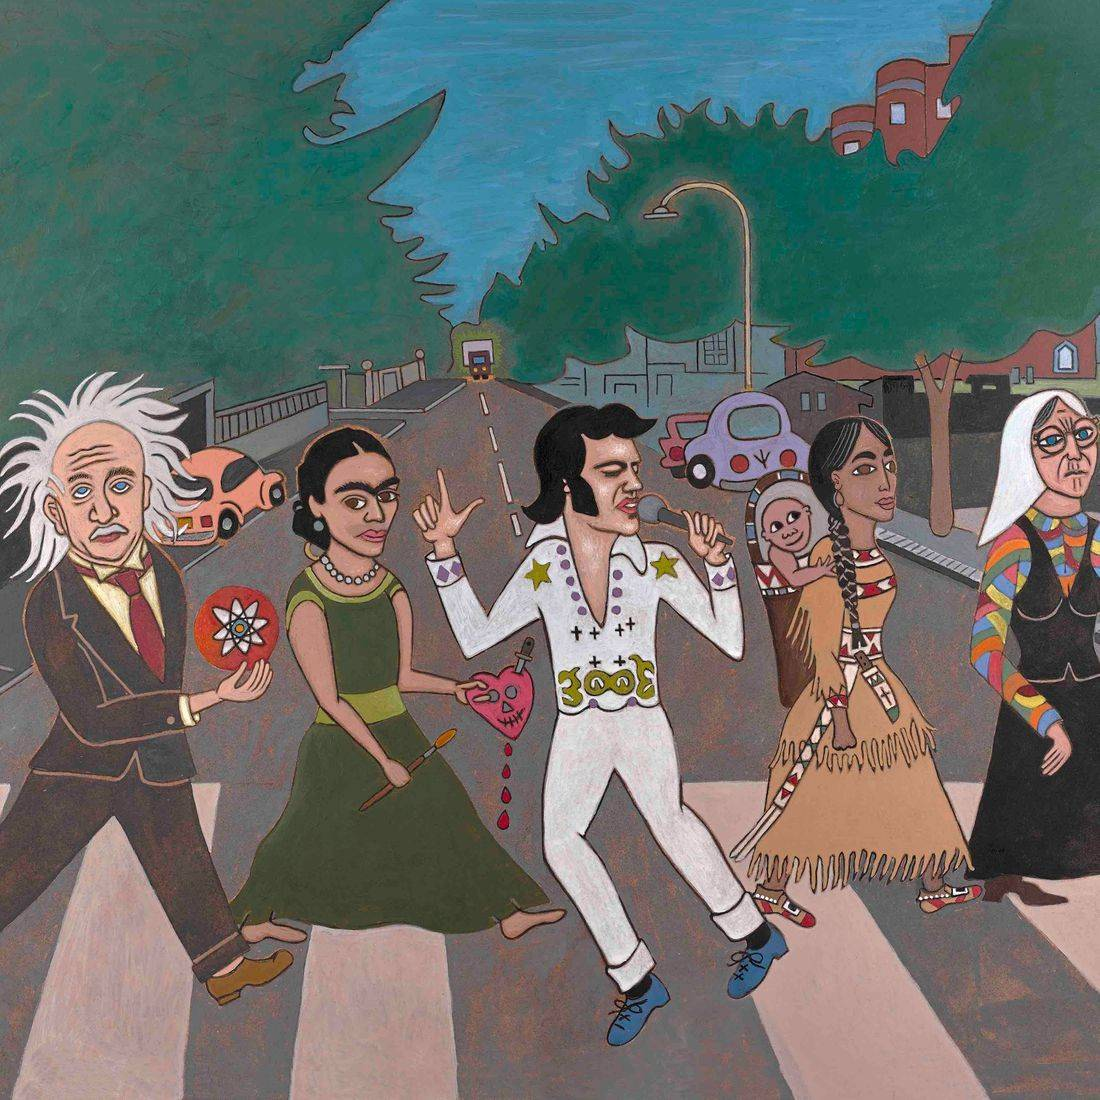 The Beatles, Albert Einstein, Frida Kahlo, Elvis Presley, Sacajawea, Papoose, Grandmother, Mother Teresa, Abbey Road, Think Tank, A Little Help from the Beatles